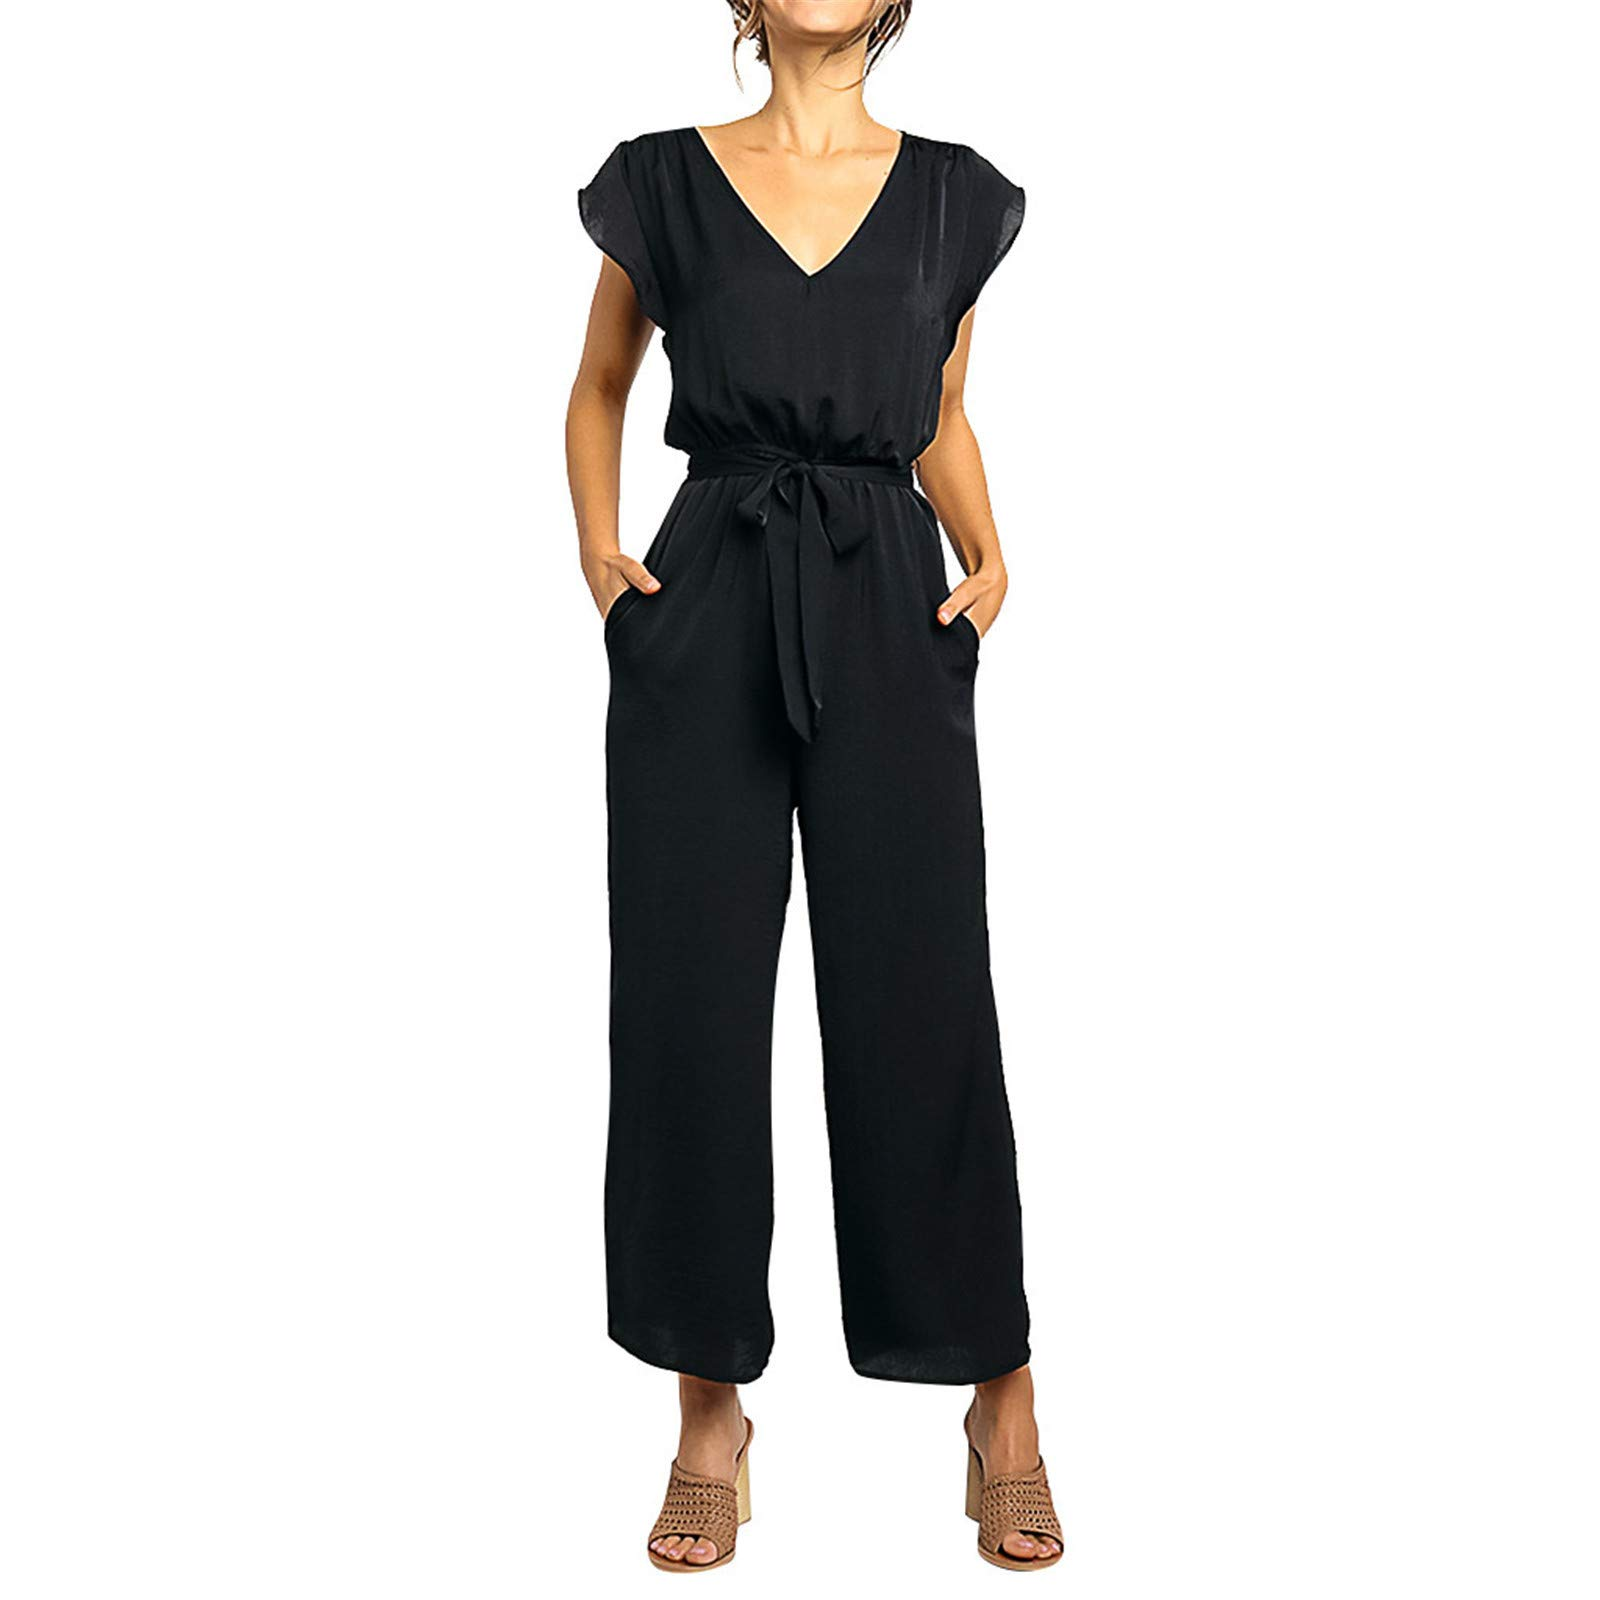 Thenxin Women Elegant Jumpsuit V Neck Flare Sleeve High Wasit Wide Leg Long Pants Rompers with Belt(Black,S) by Thenxin